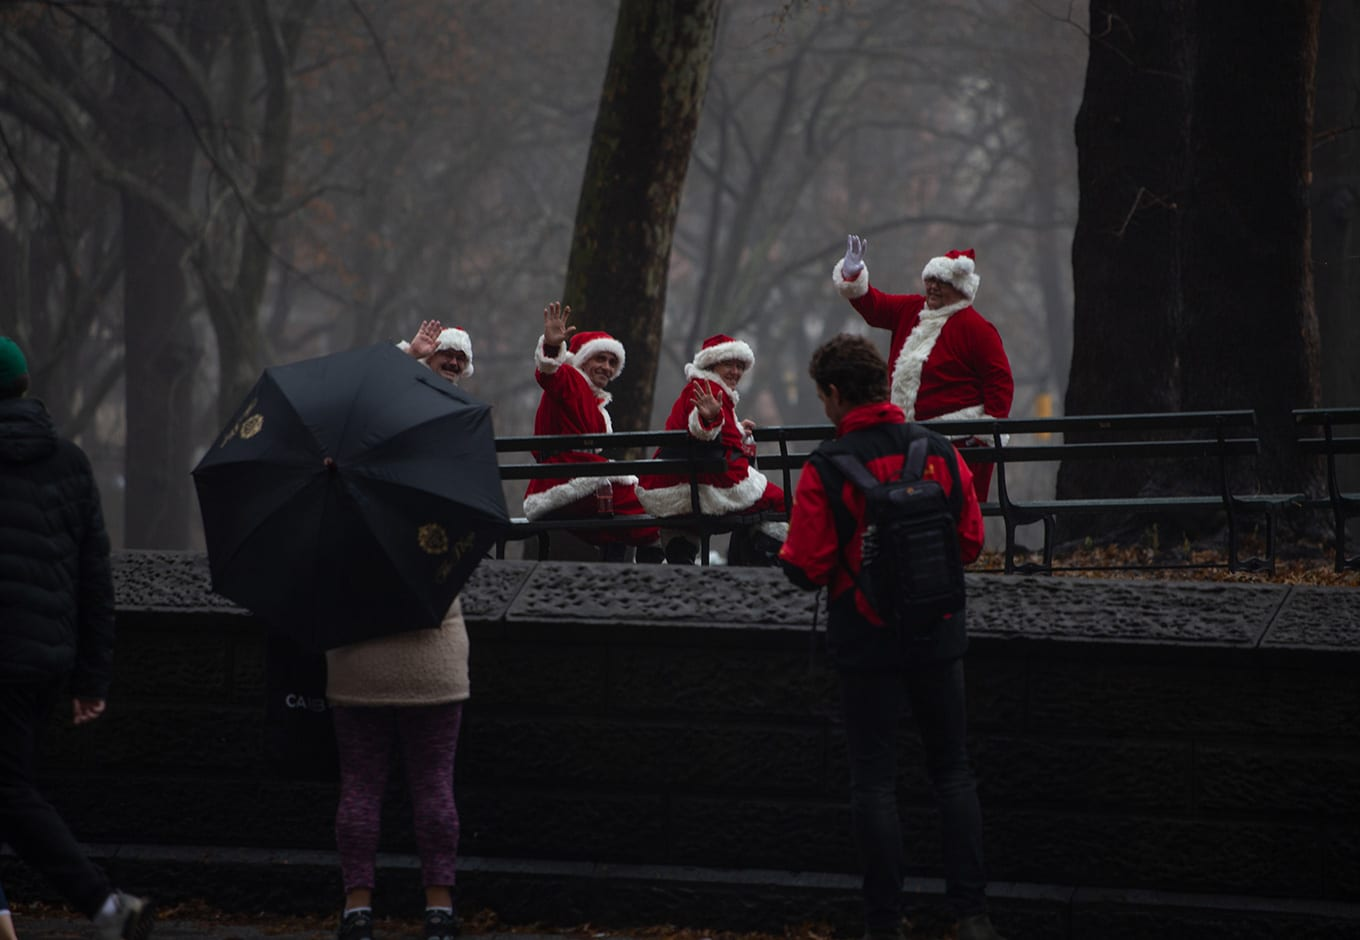 Men dressed in Santa outfits enjoying free outdoor events in NYC's Central Park